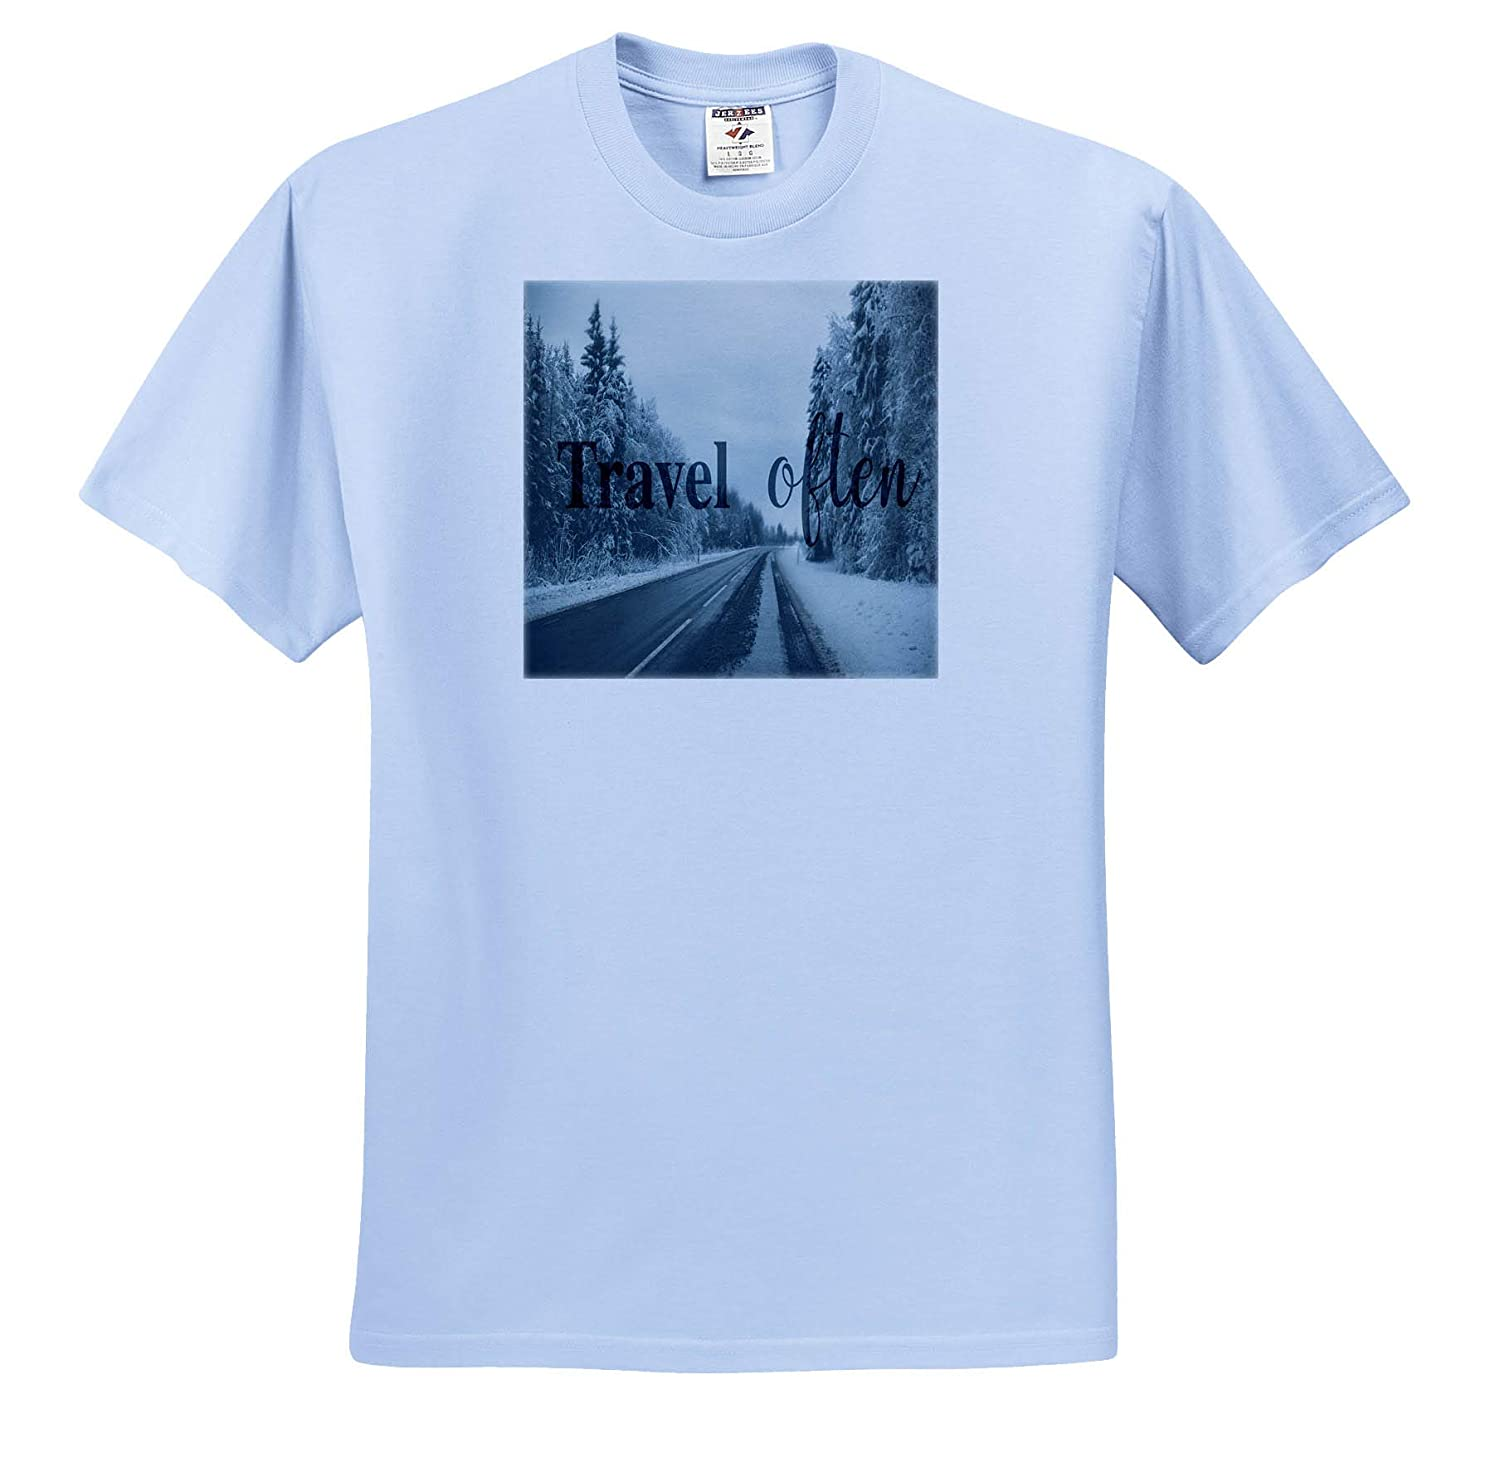 Photograph- Travel Often 3dRose Made in The Highlands Travel Often Affirmation with Road Trip Image T-Shirts